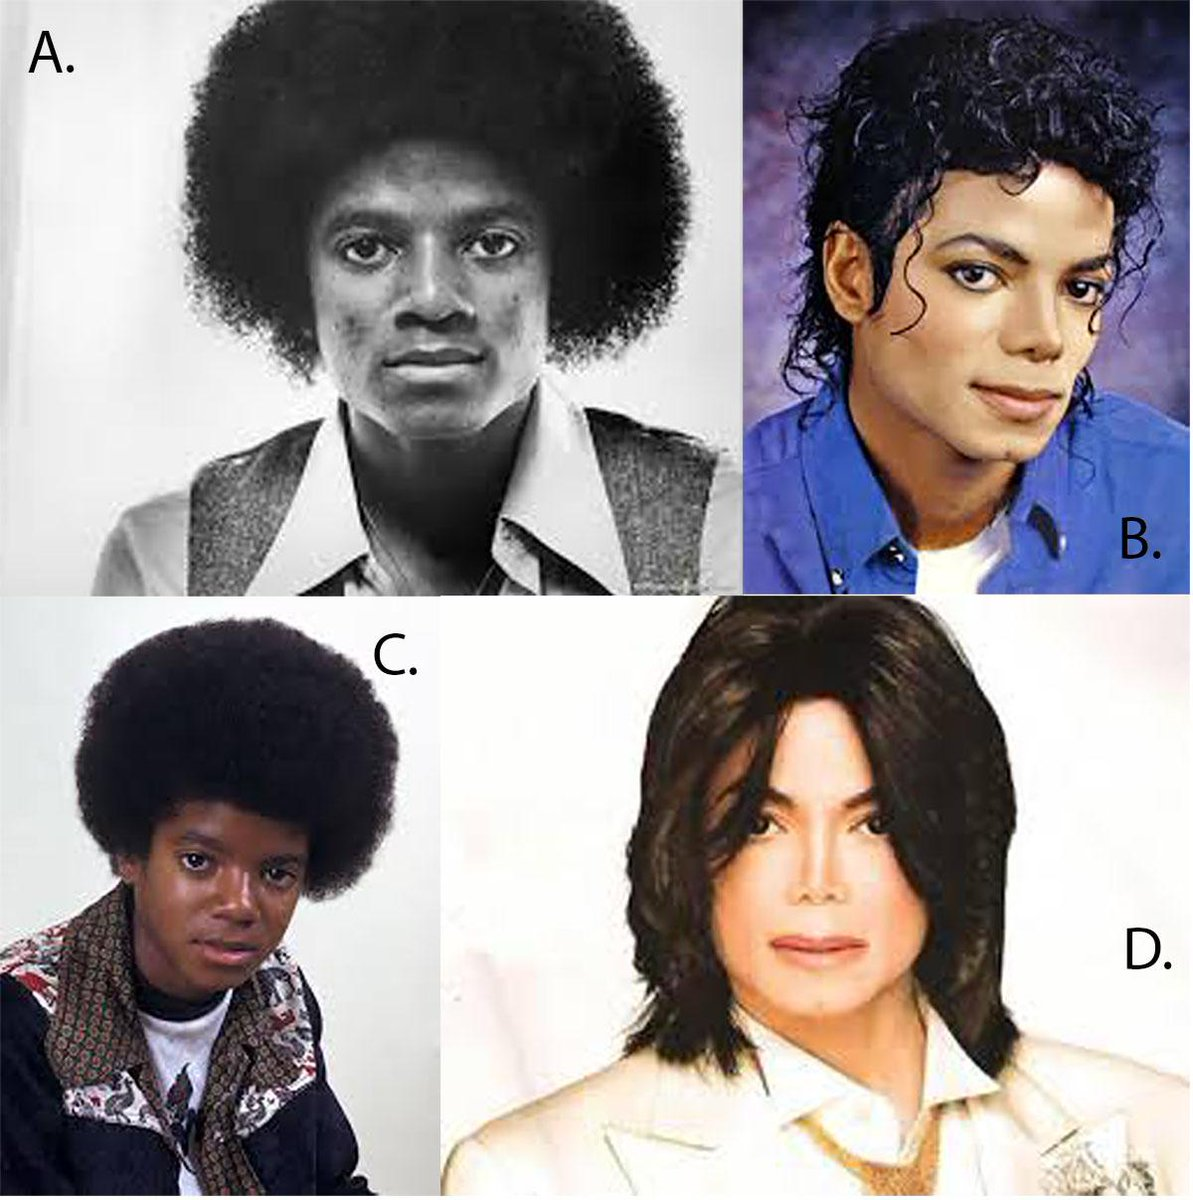 Can you name these people? #AskRachel http://t.co/4Wgus5Ww19